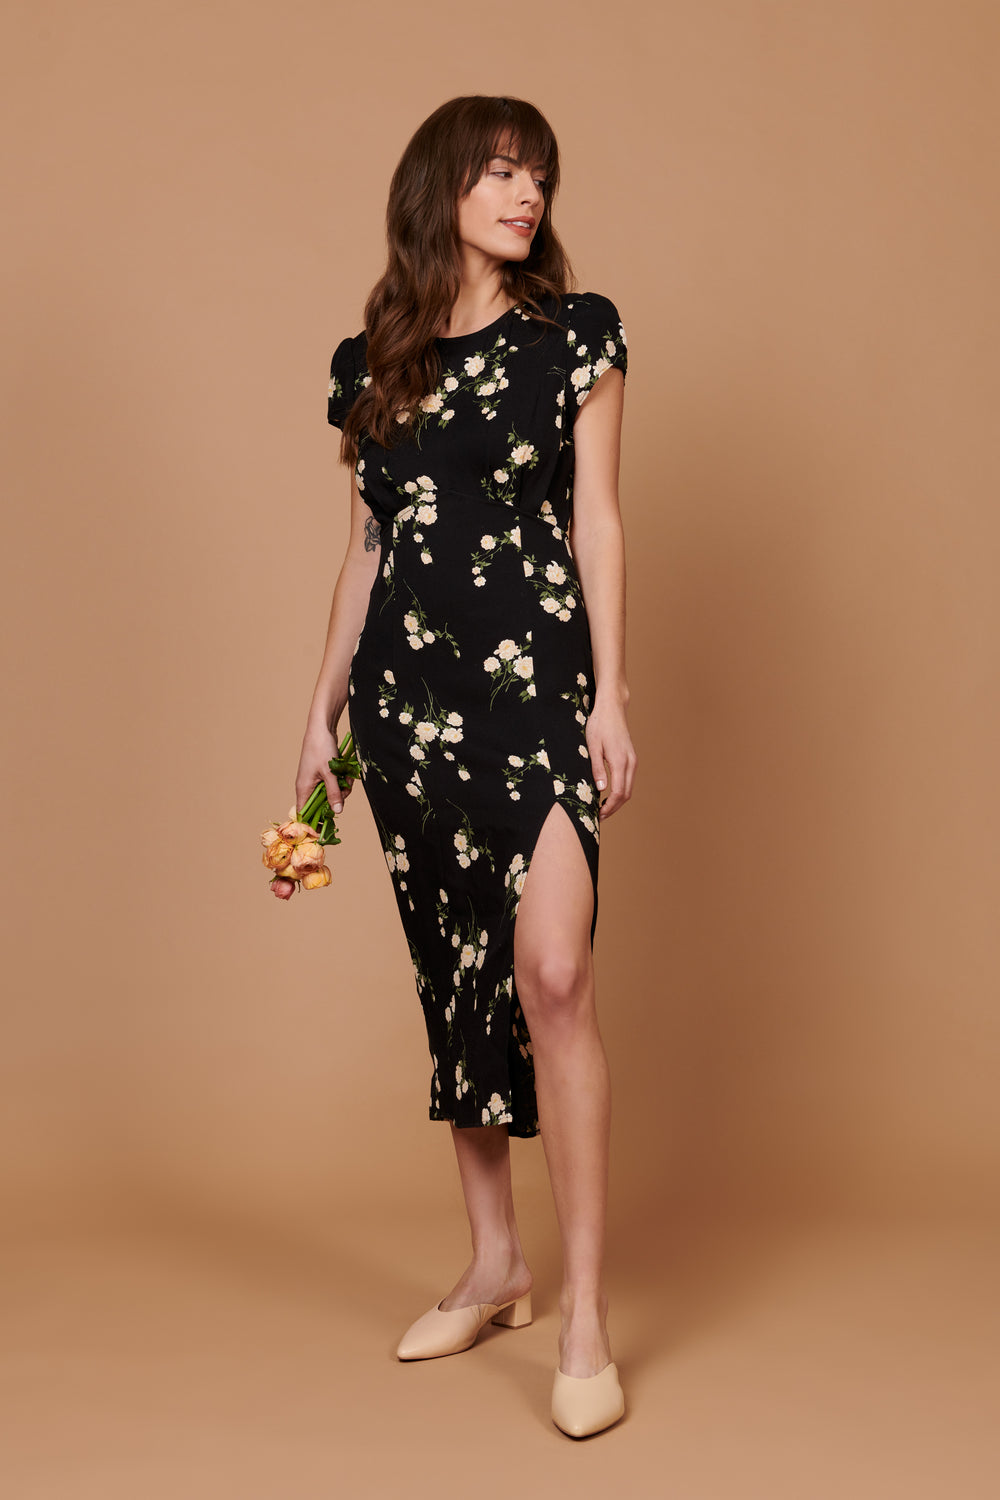 Scarlette Dress in Floral - Whimsy & Row